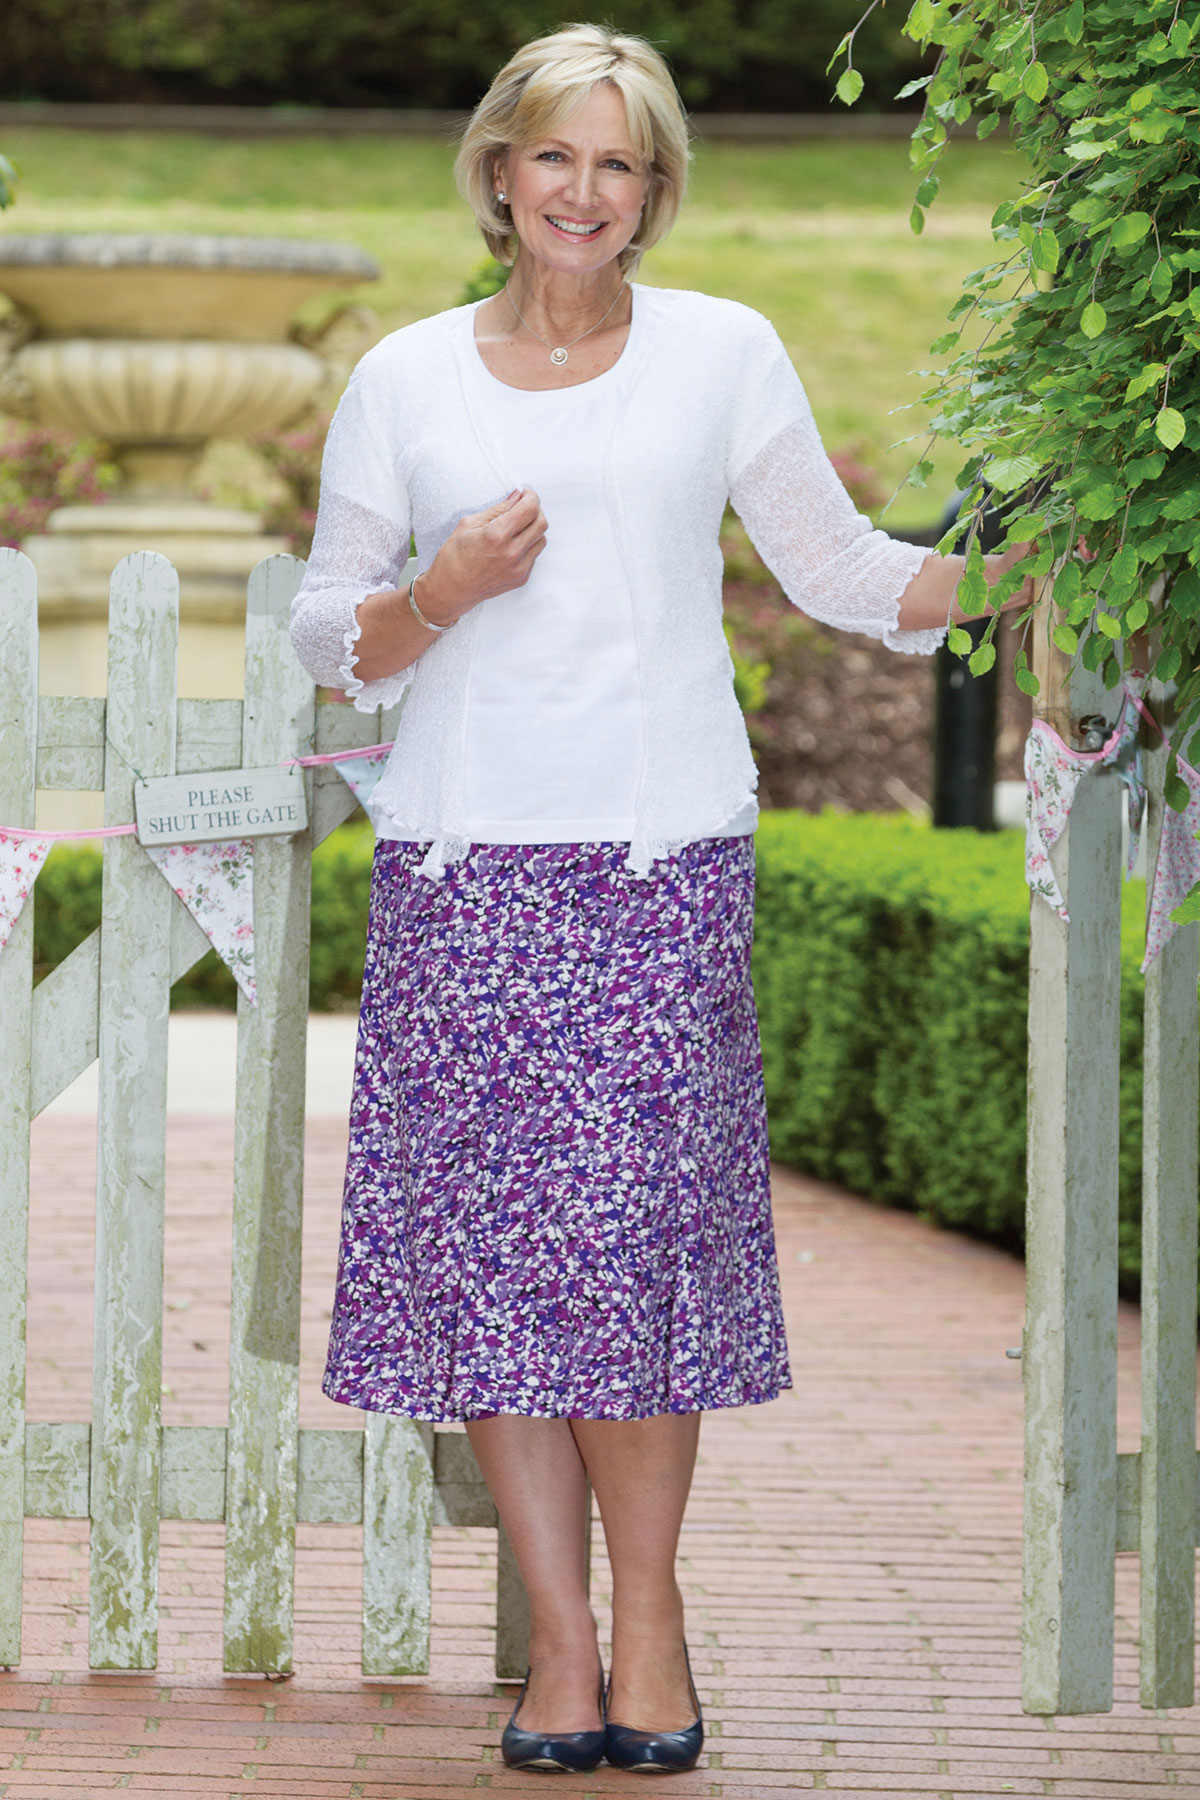 Riverhill T-Shirt, Bella Shrug & Monet Pastel Skirt